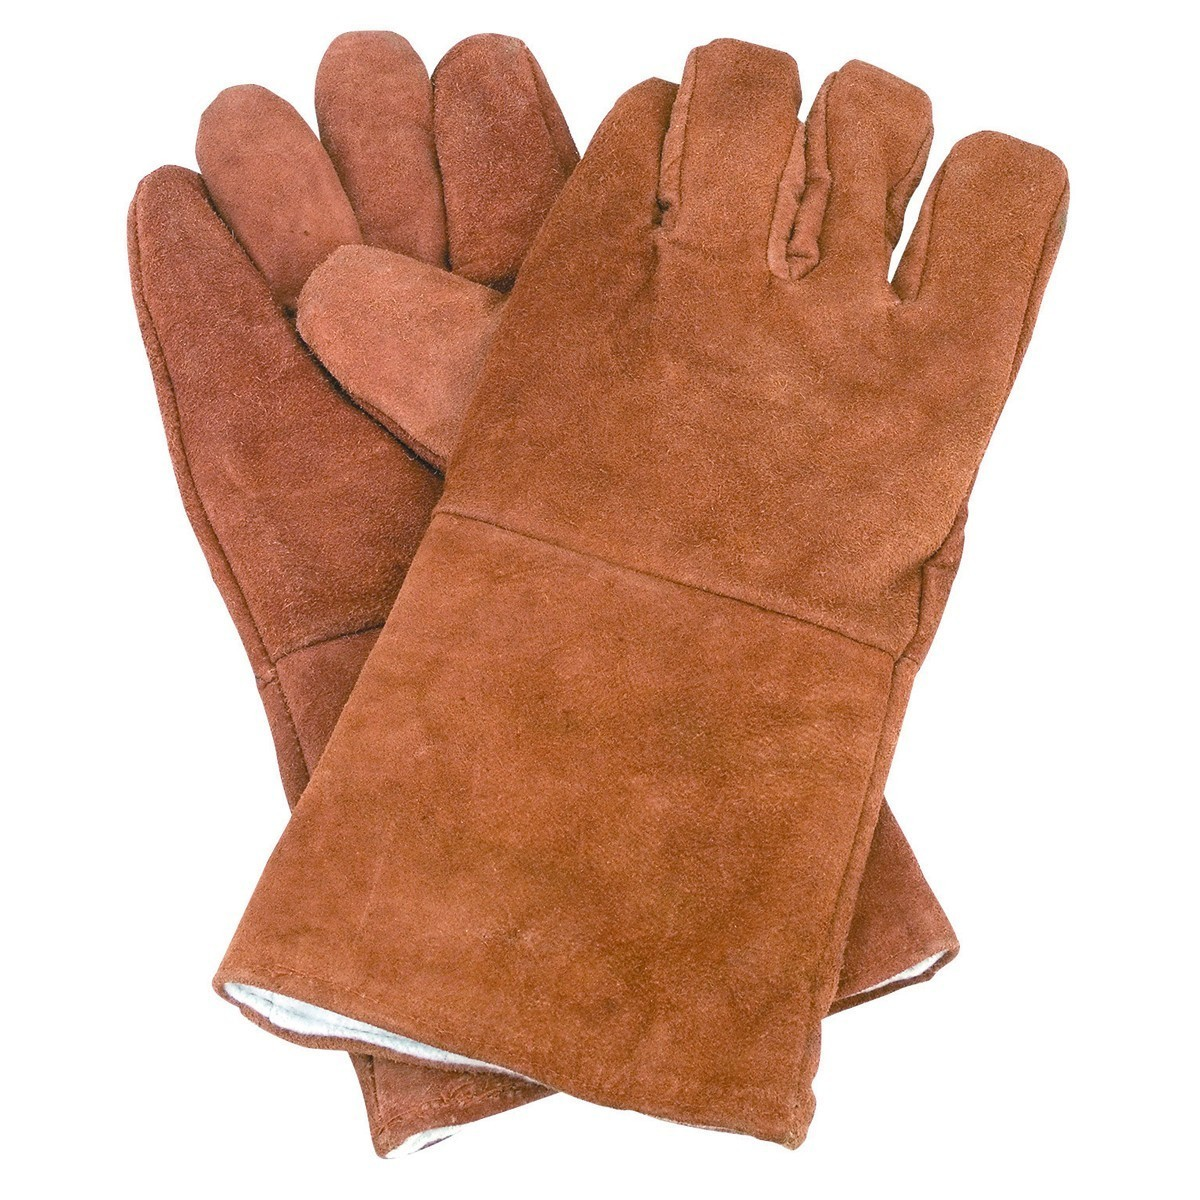 "Leather gloves with 14"" gaunts for barbed wire"